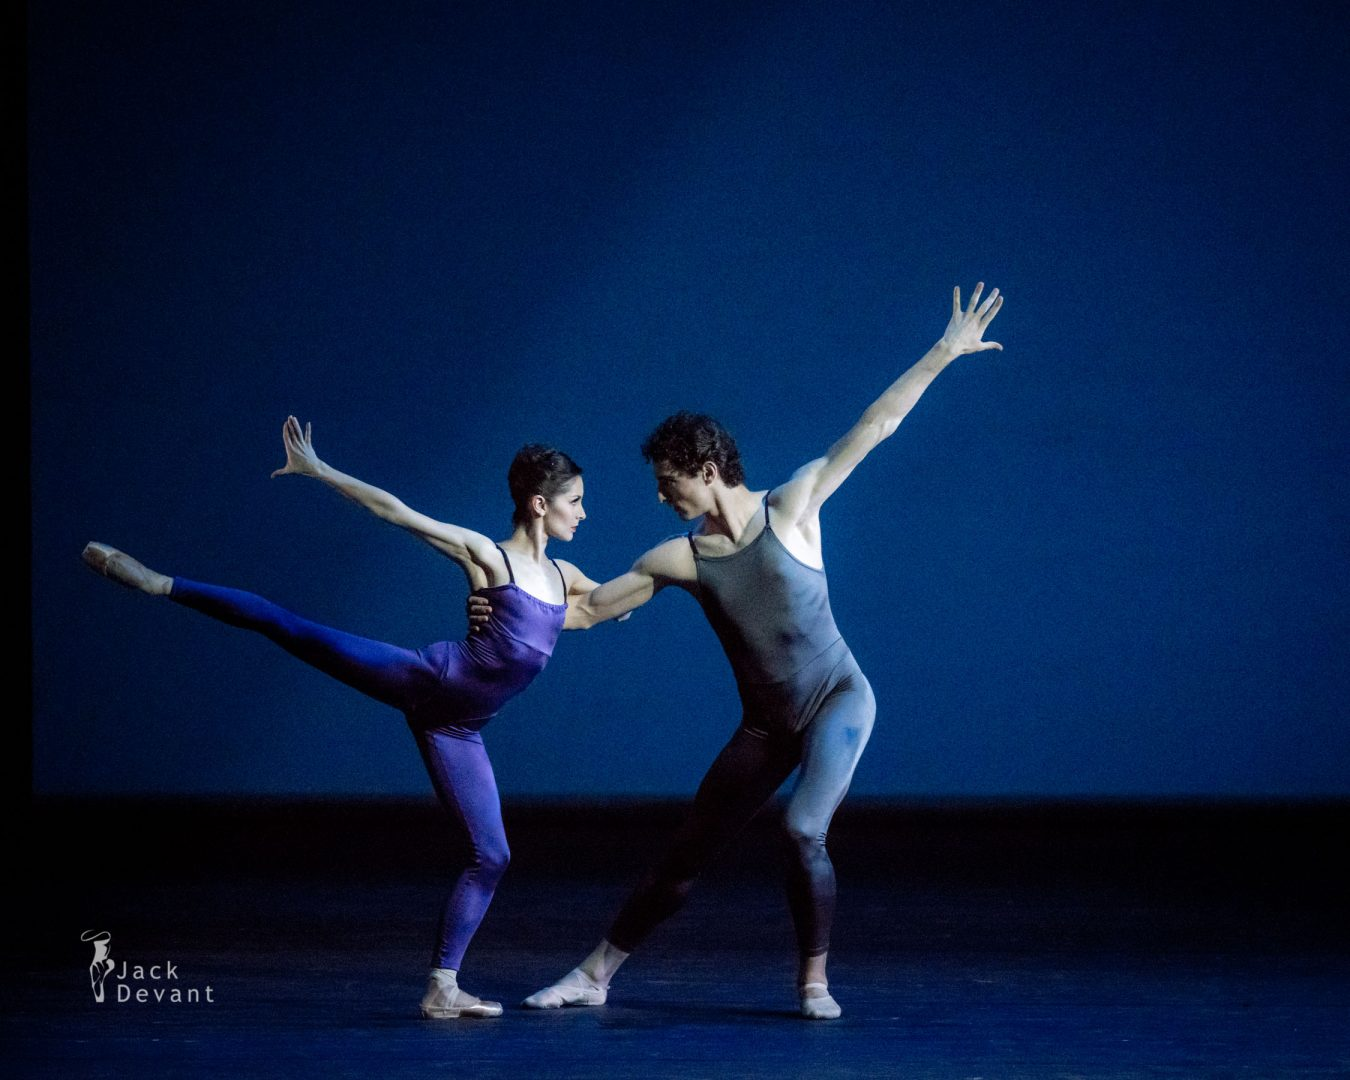 Lauren Strongin and Carlo Di Lanno in Variations for Two Couples 3